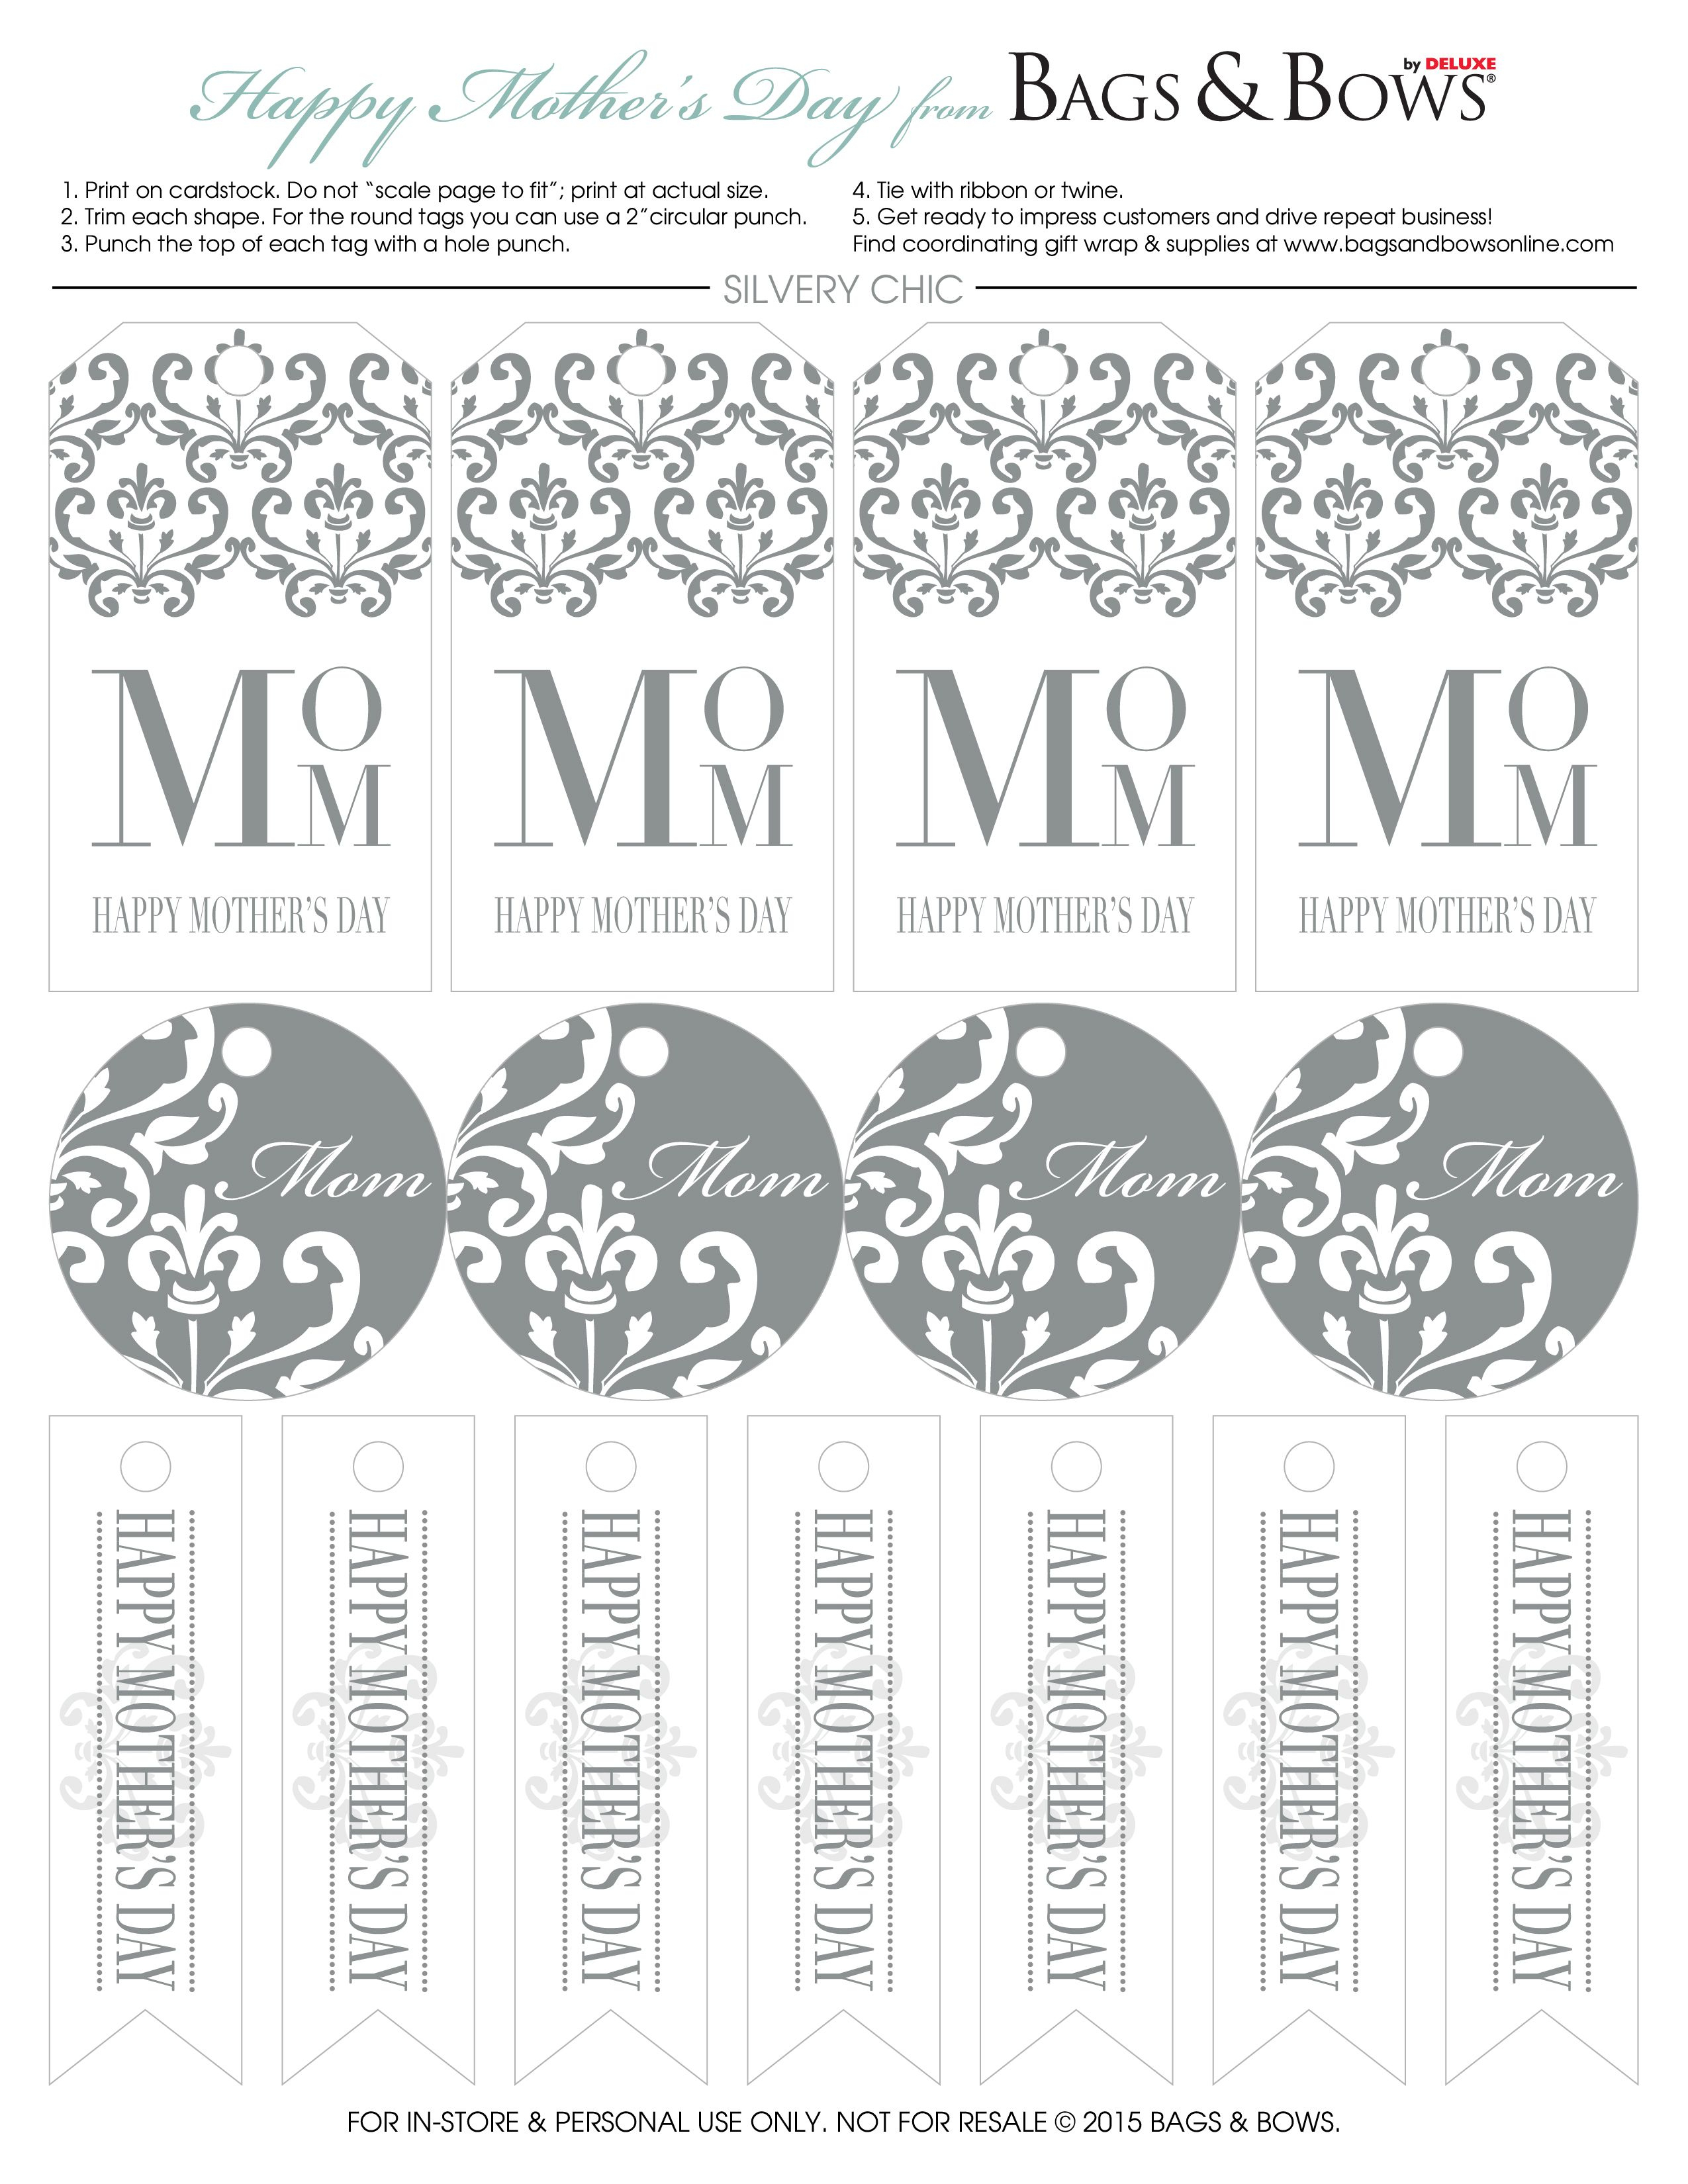 Free Printable Gift Tags! Mother's Day Is Fast Approaching. Click - Free Online Gift Tags Printable